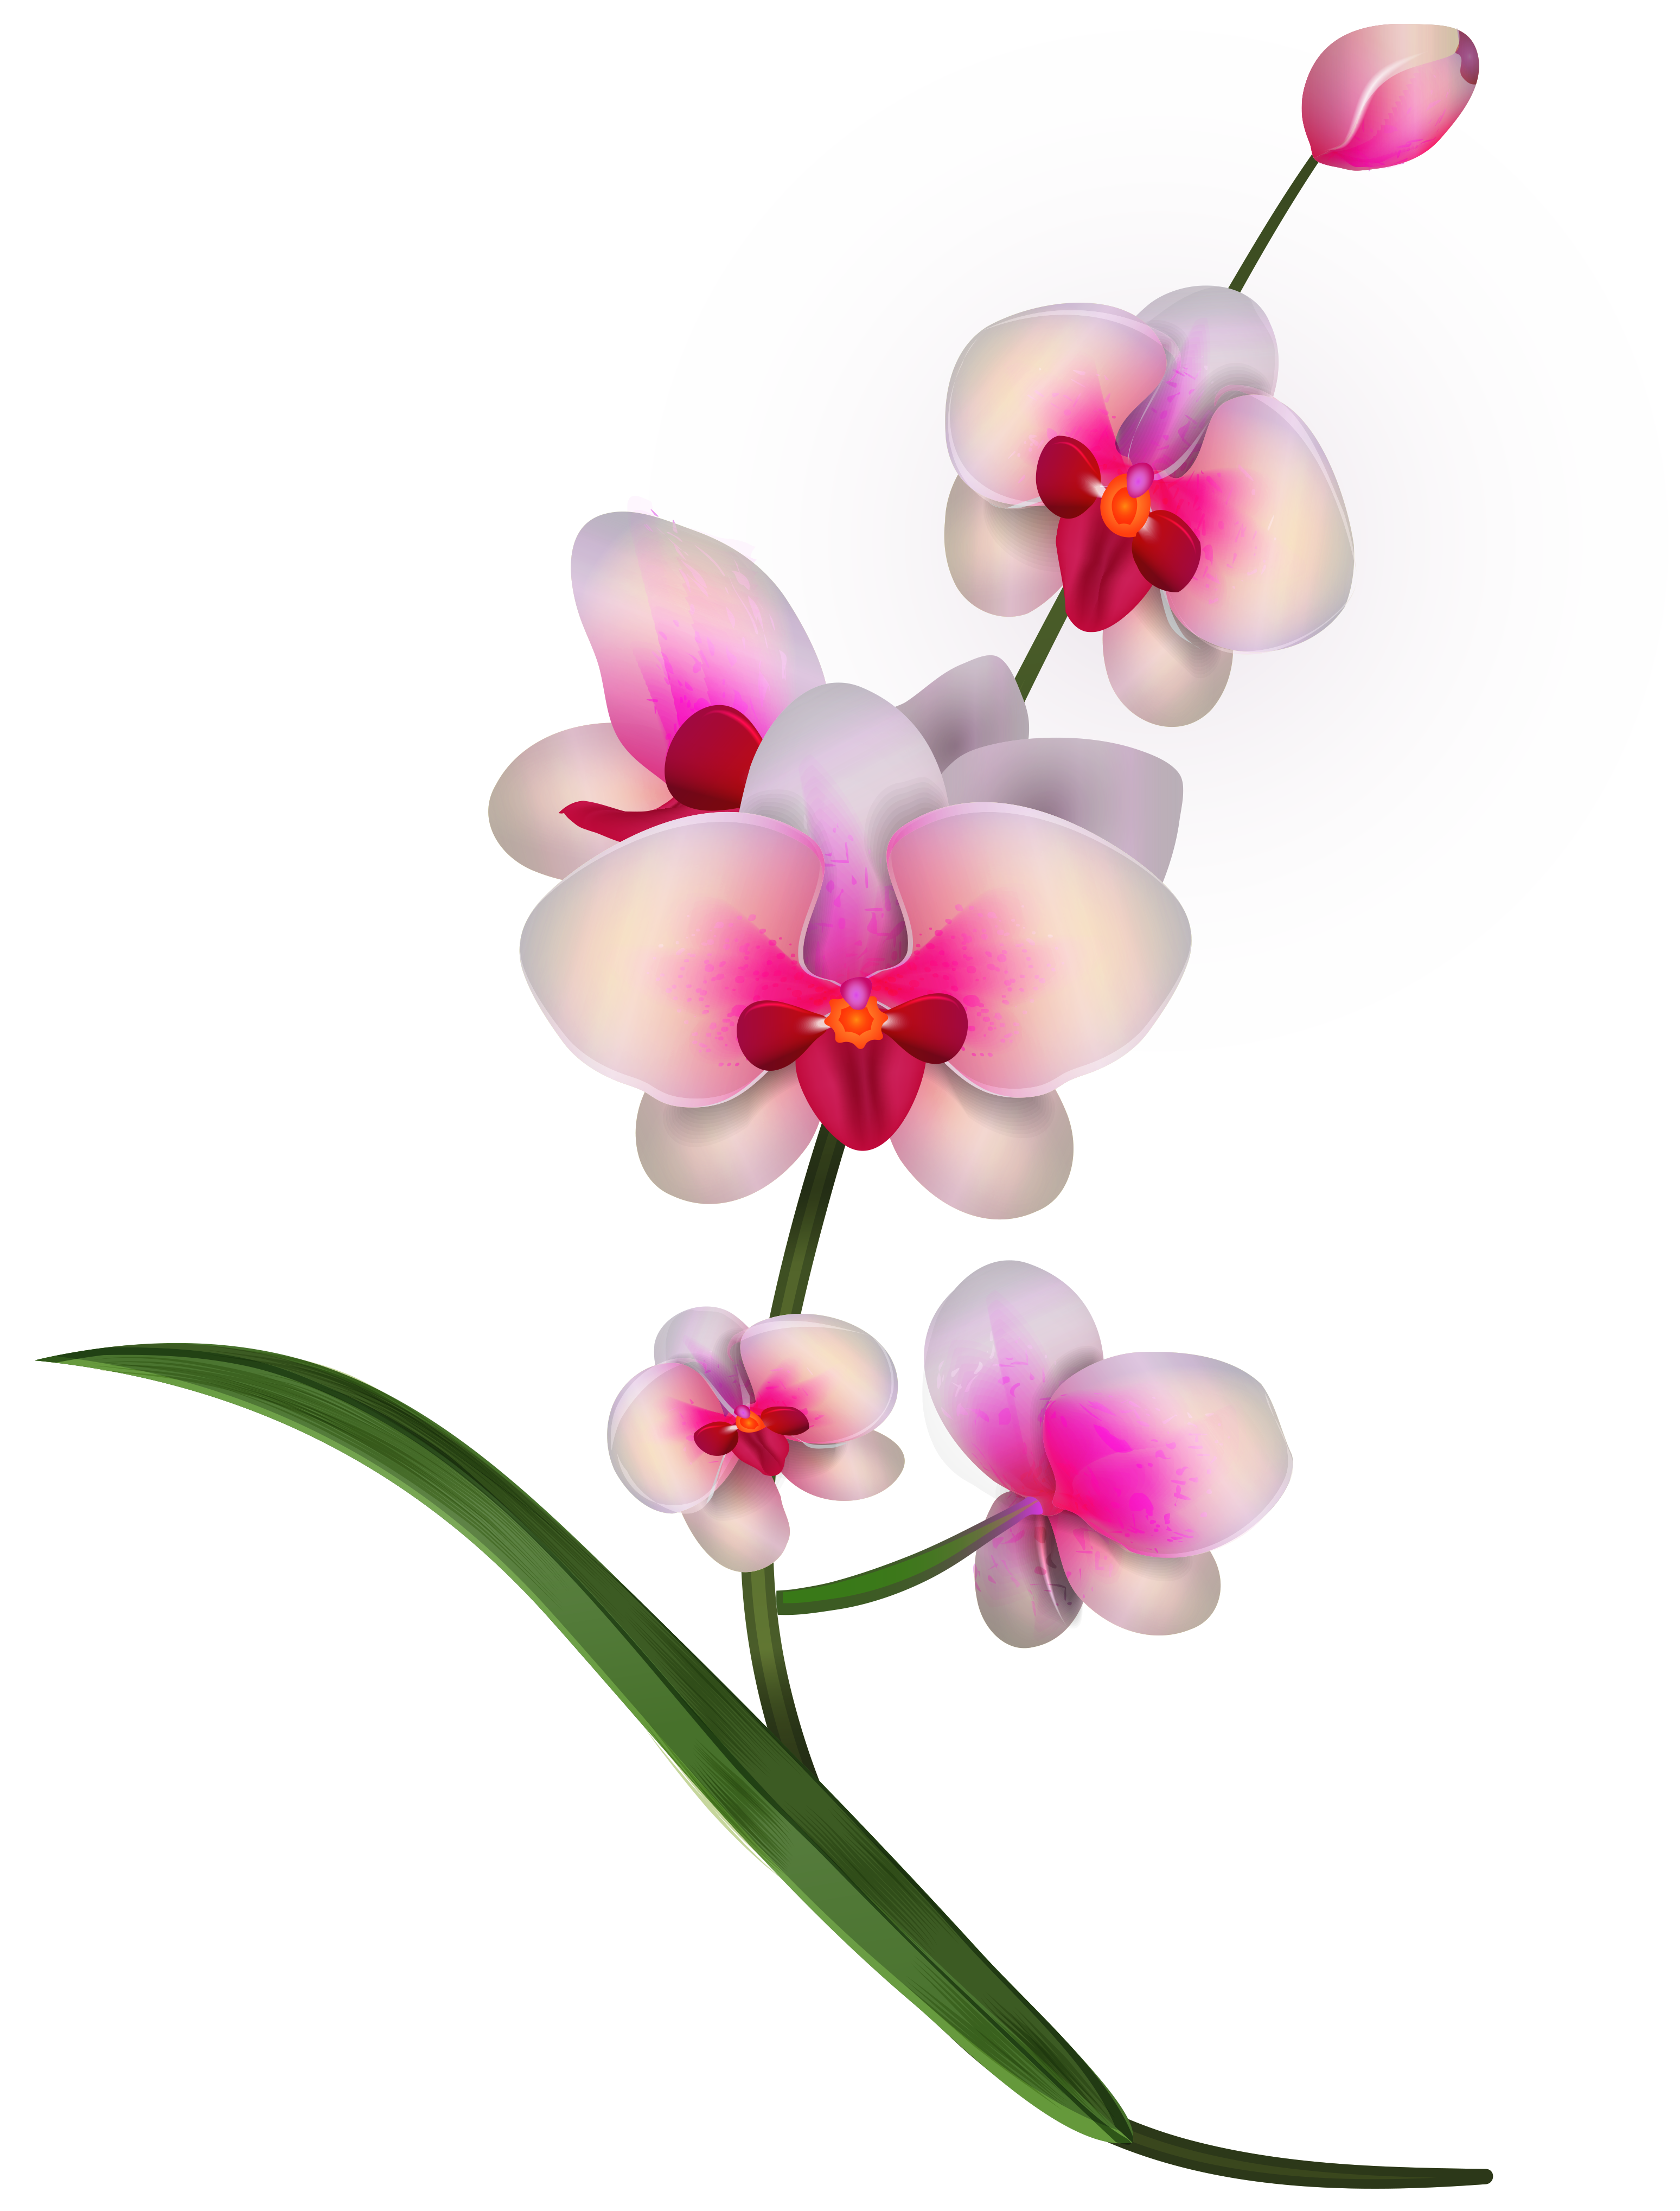 Orchid clipart orchid sketch. Free cliparts download clip